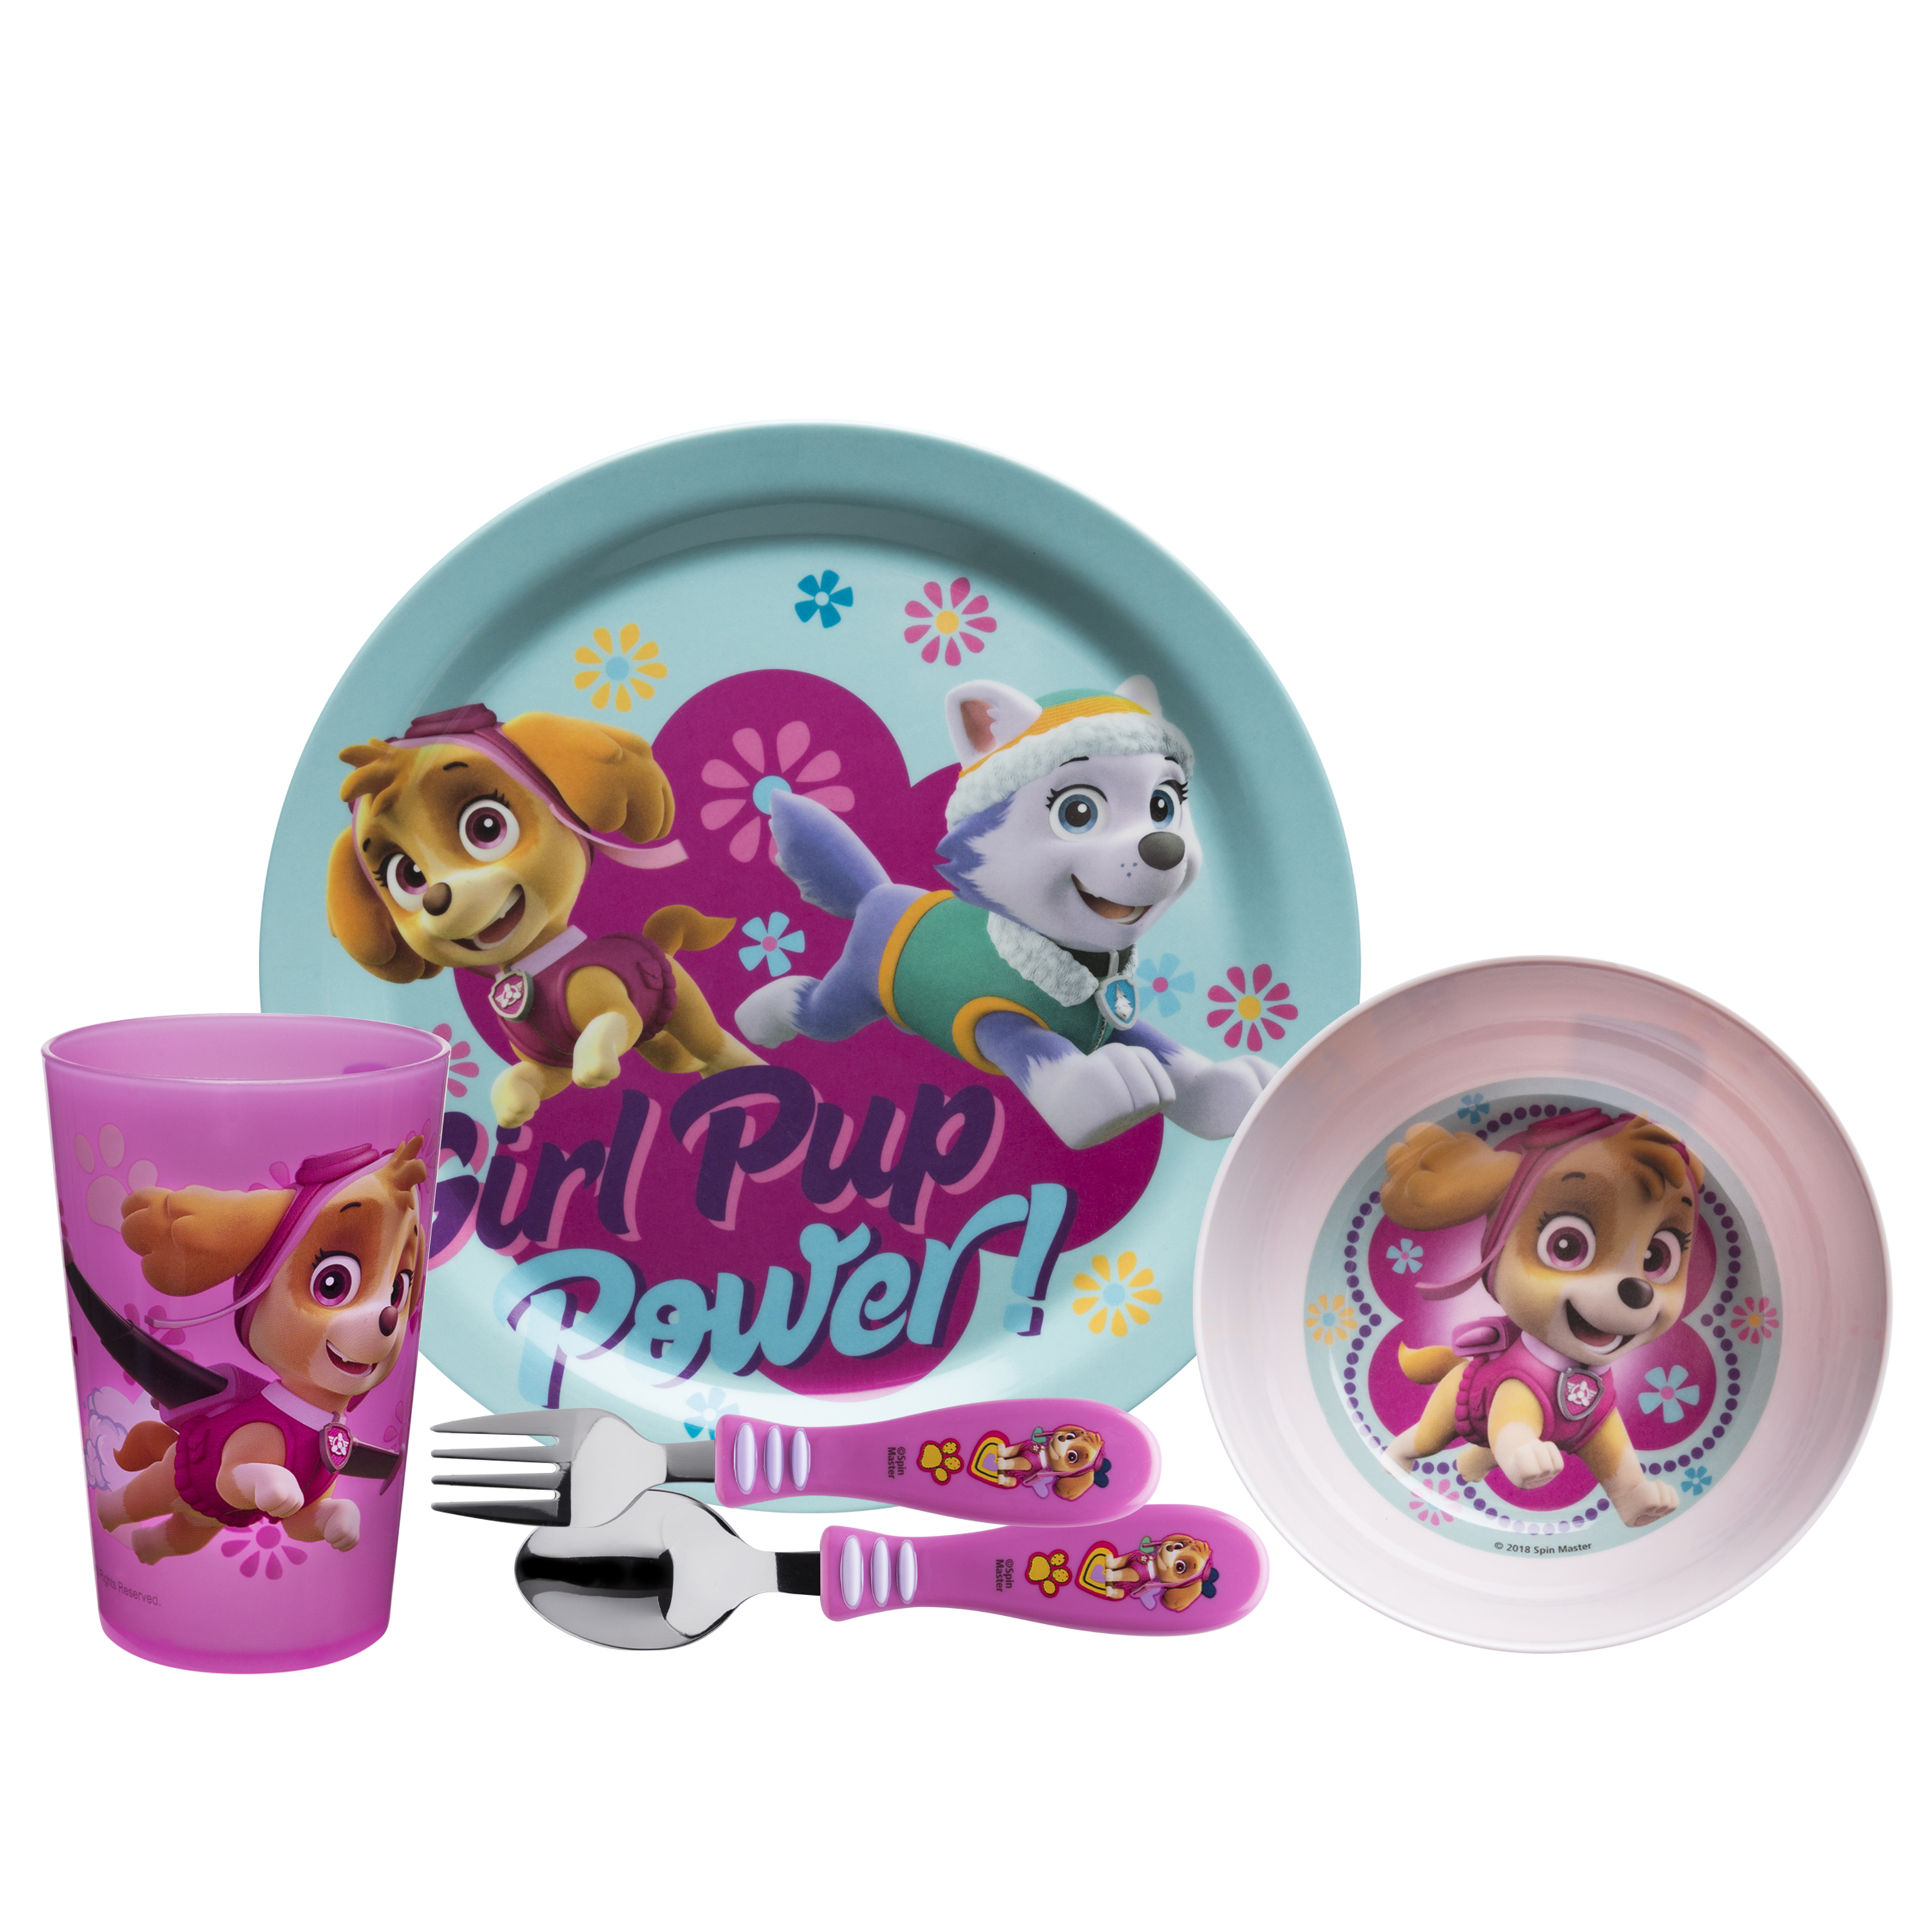 Paw Patrol Dinnerware Set, Skye & Everest, 5-piece set slideshow image 2